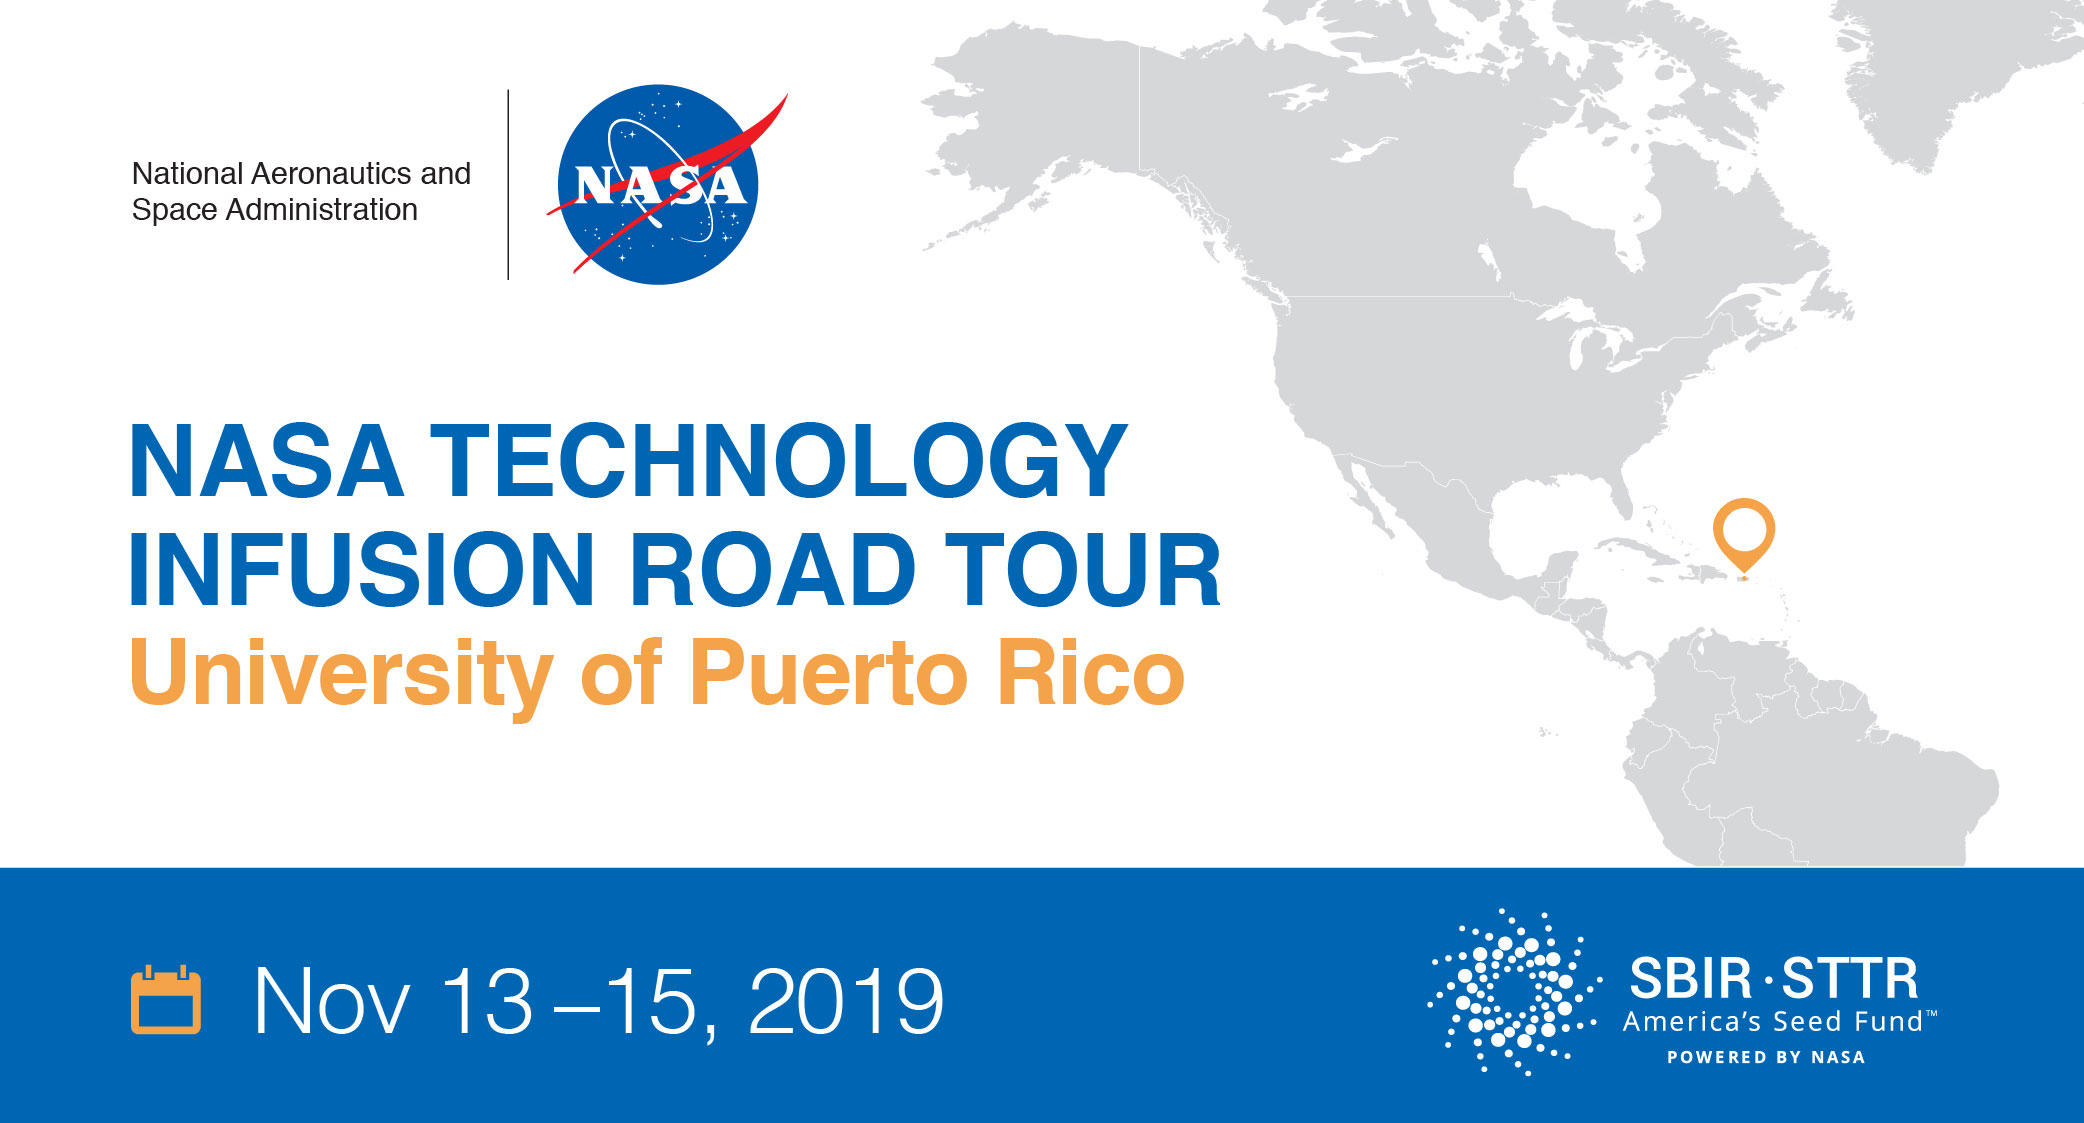 NASA HBCU/MSI Technology Infusion Road Tour: University of Puerto Rico